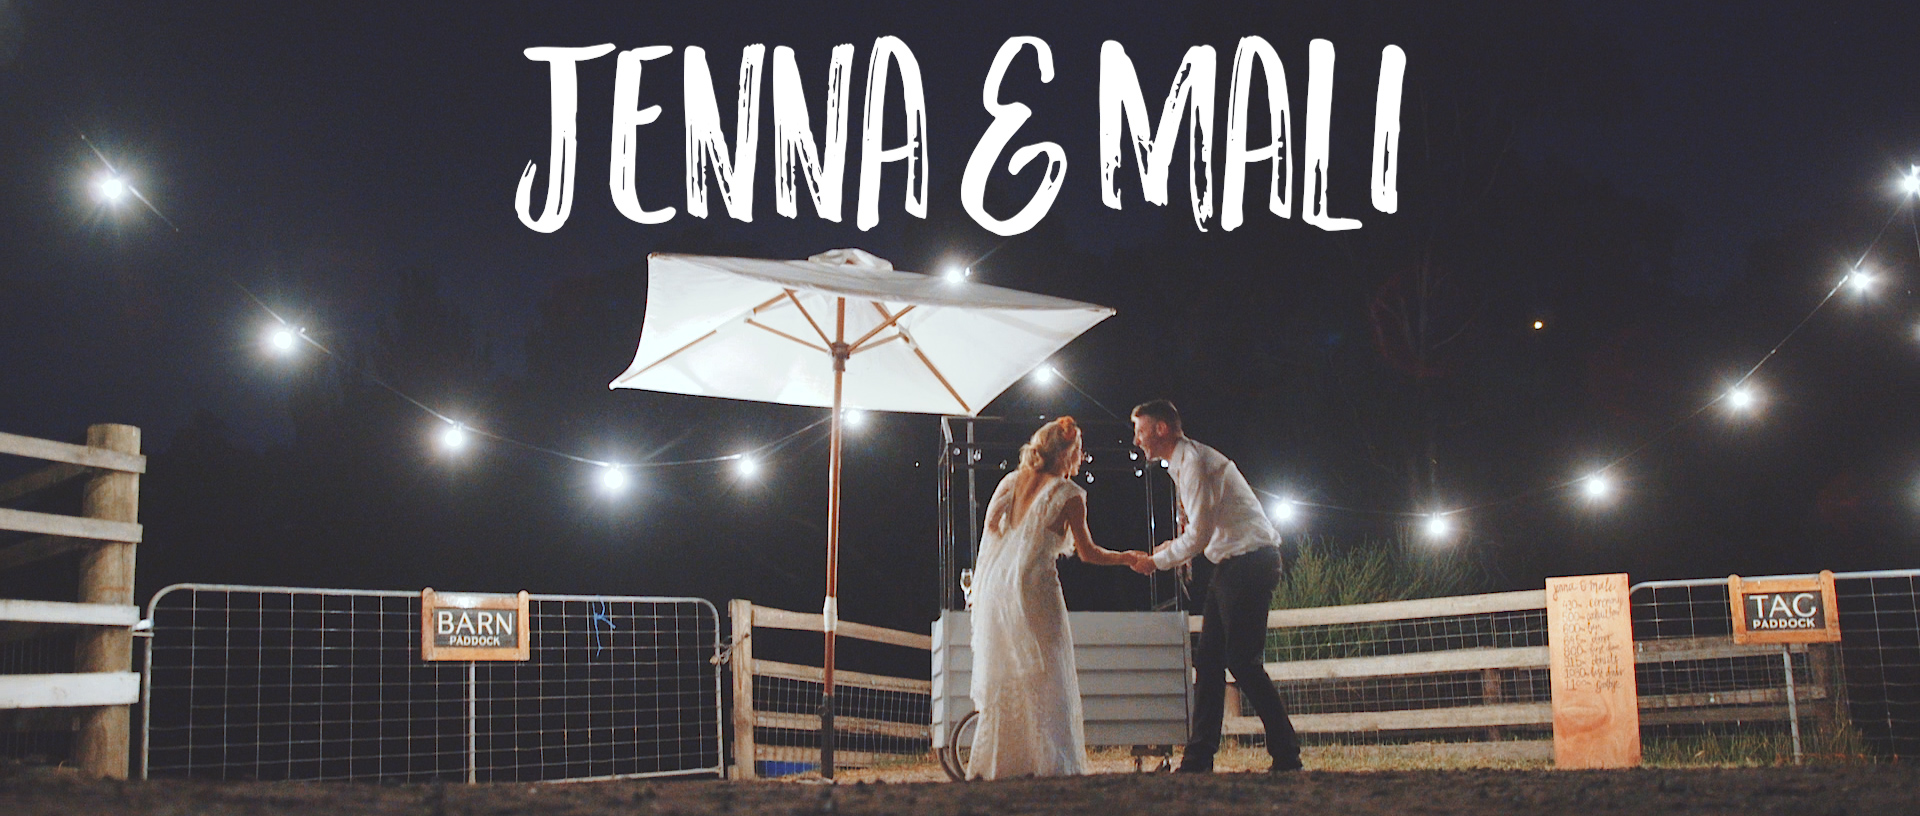 Jenna + Mali | Melbourne, Australia | Collingwood Childrens Farm